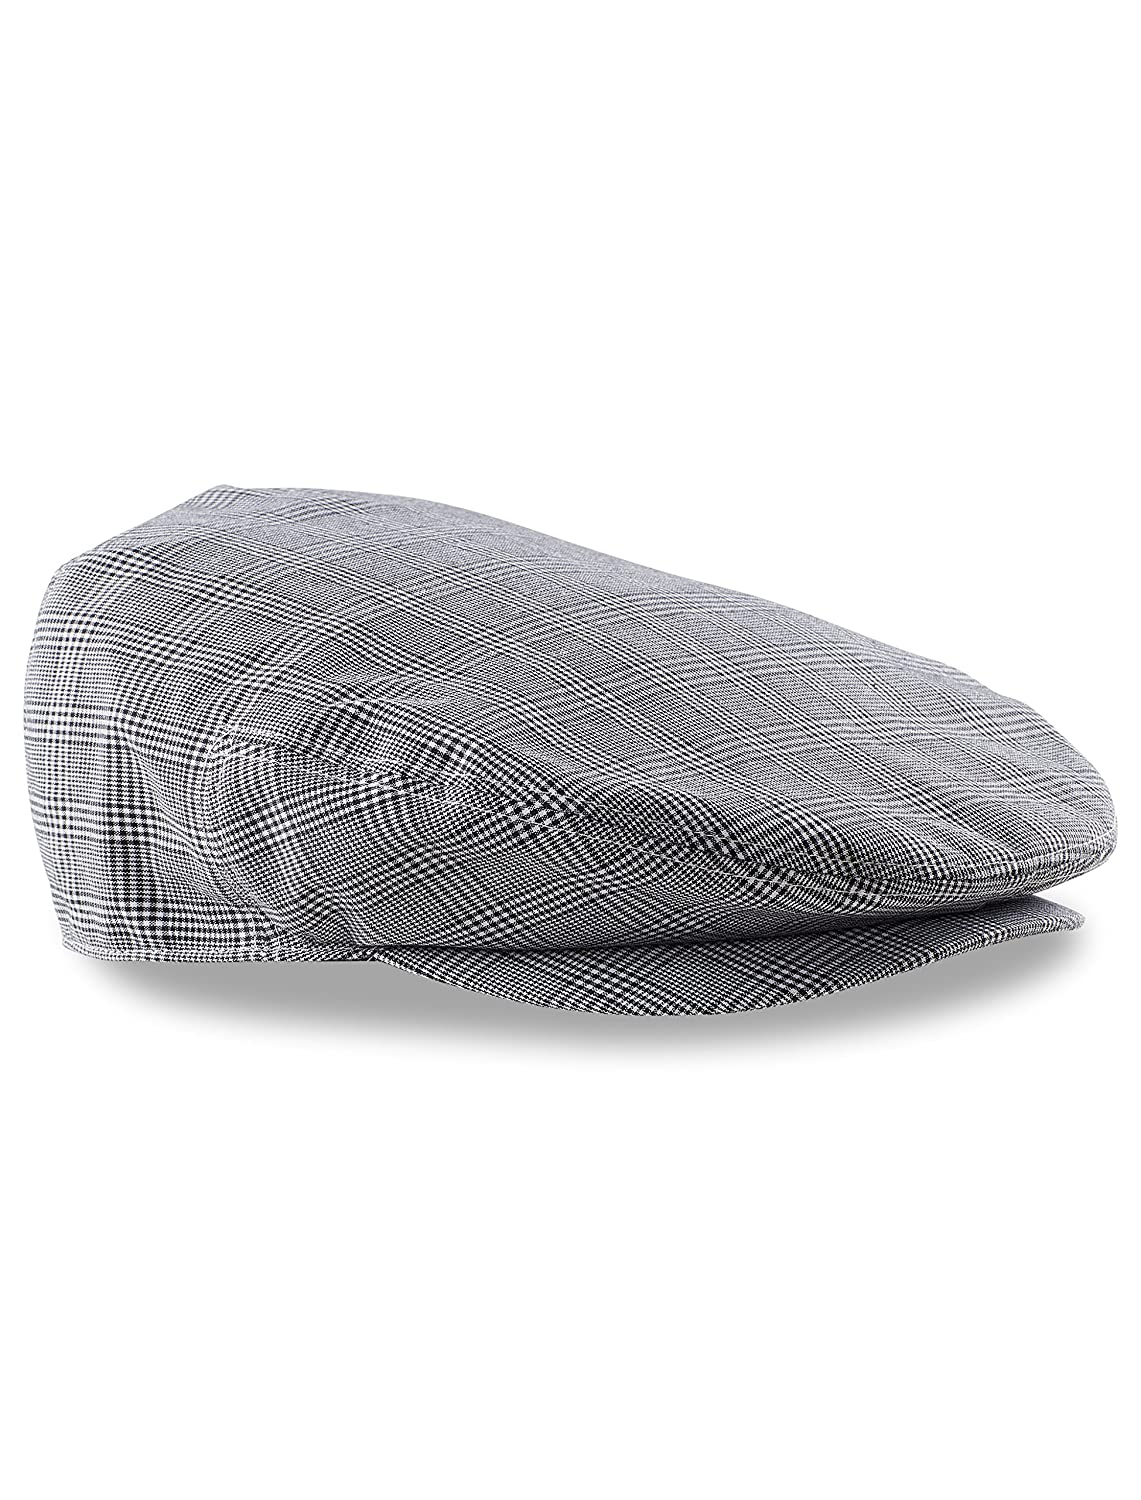 New York Glove Company Plaid Driving Cap